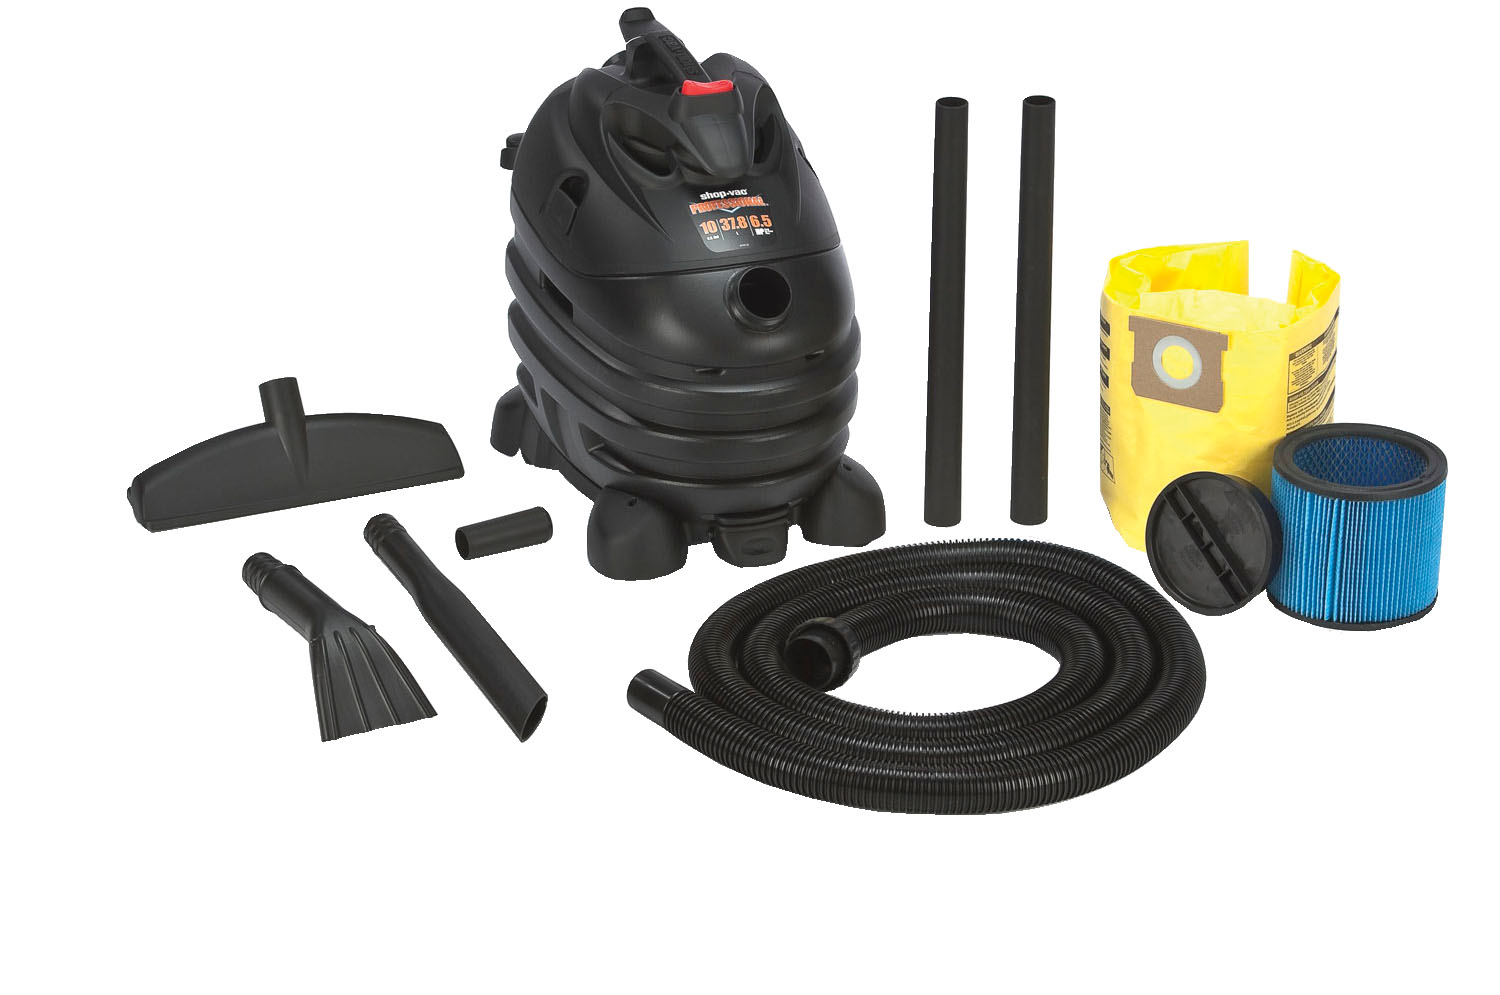 Shop-Vac 6.5 Peak HP Contractor, Portable with Dolly, Automotive Professional, 10 Gal